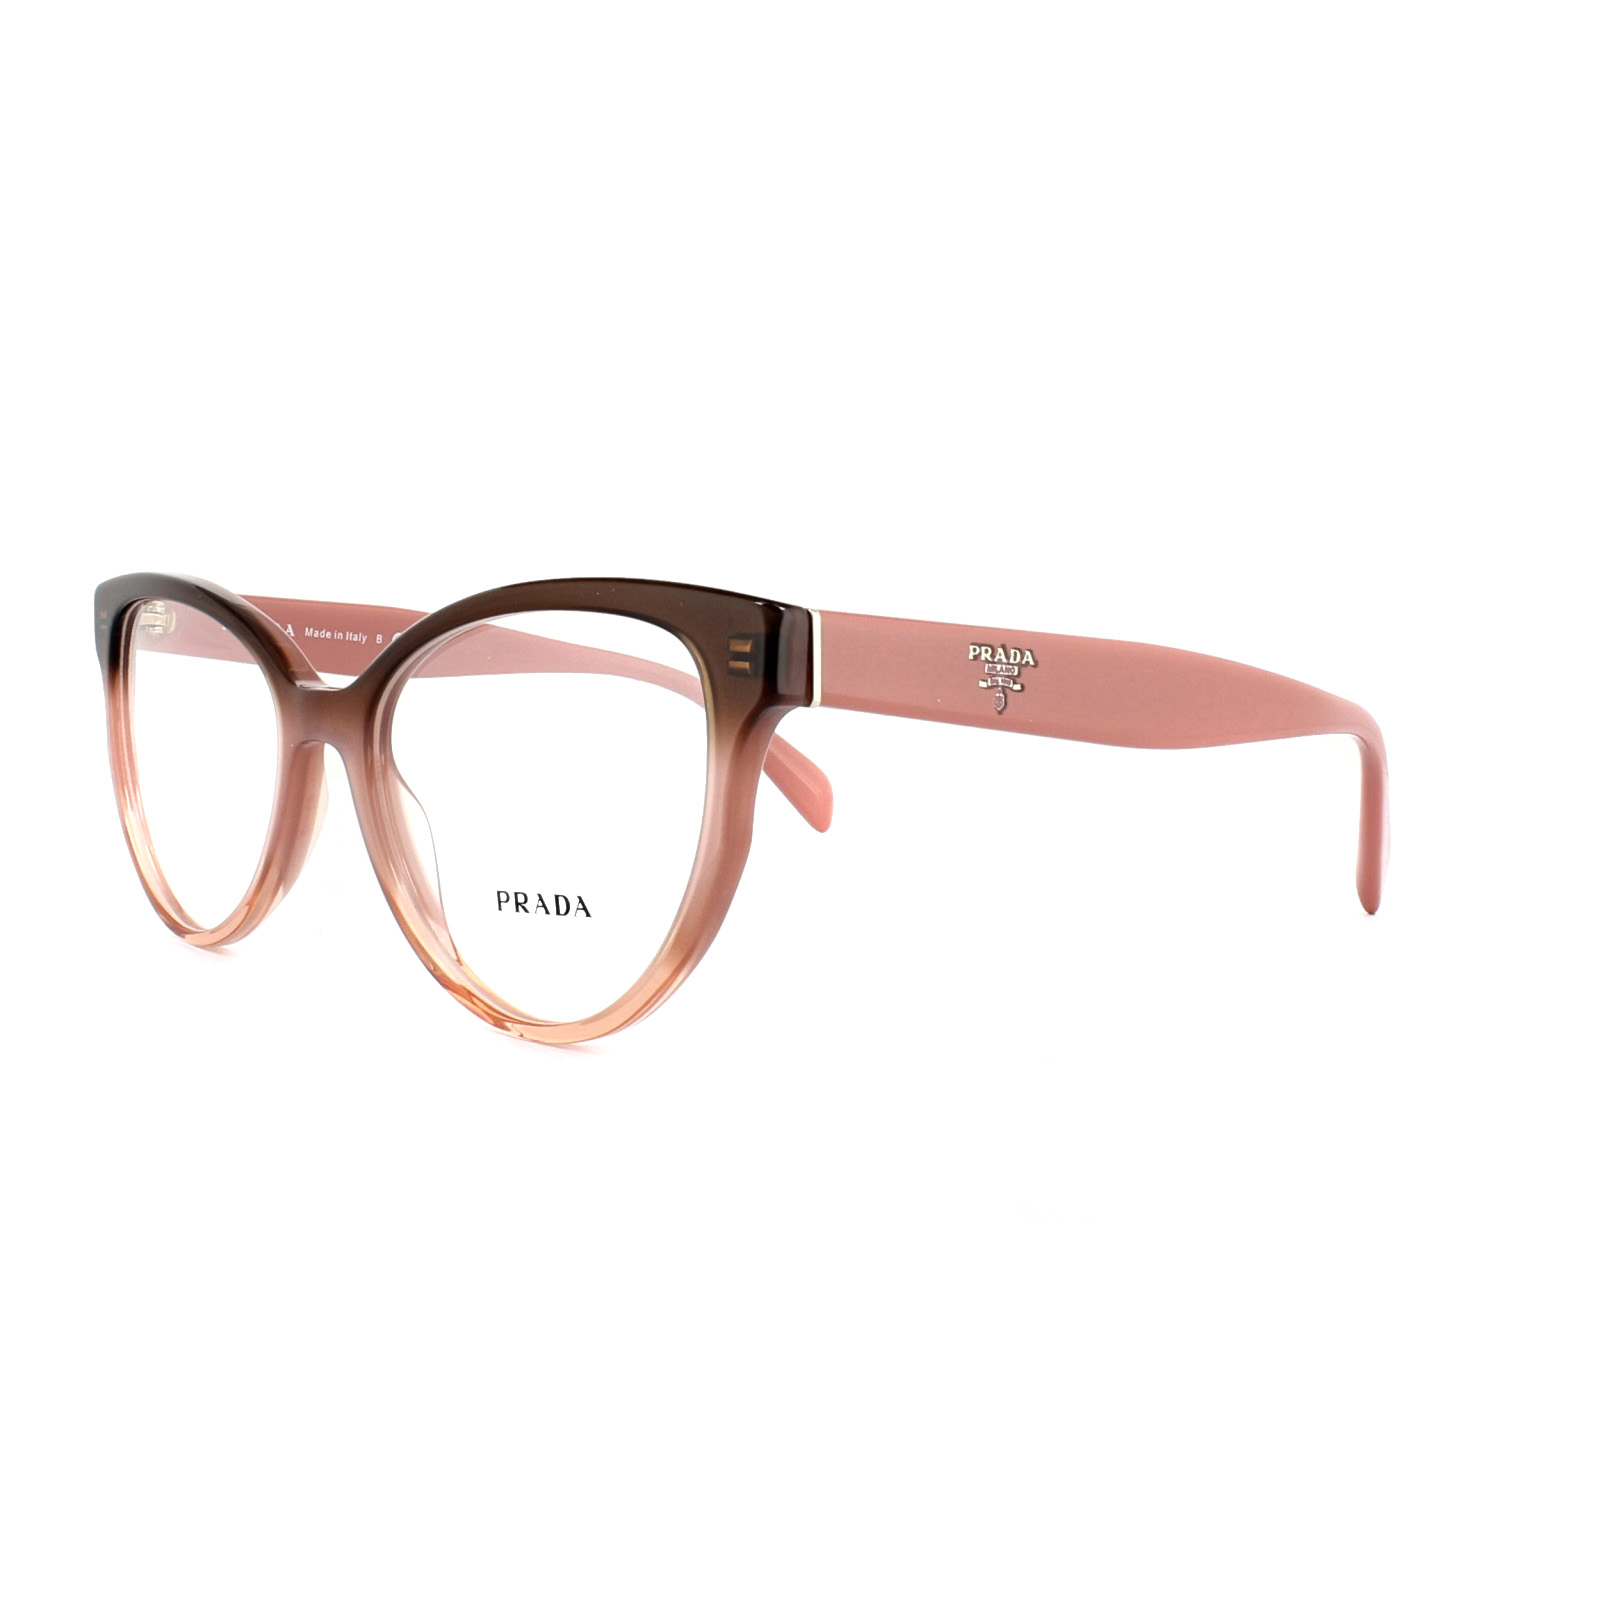 8e500e64e85ee ... good sentinel prada glasses frames pr 01uv vx51o1 gradient bordeaux  womens 52mm 5846b 4b7e8